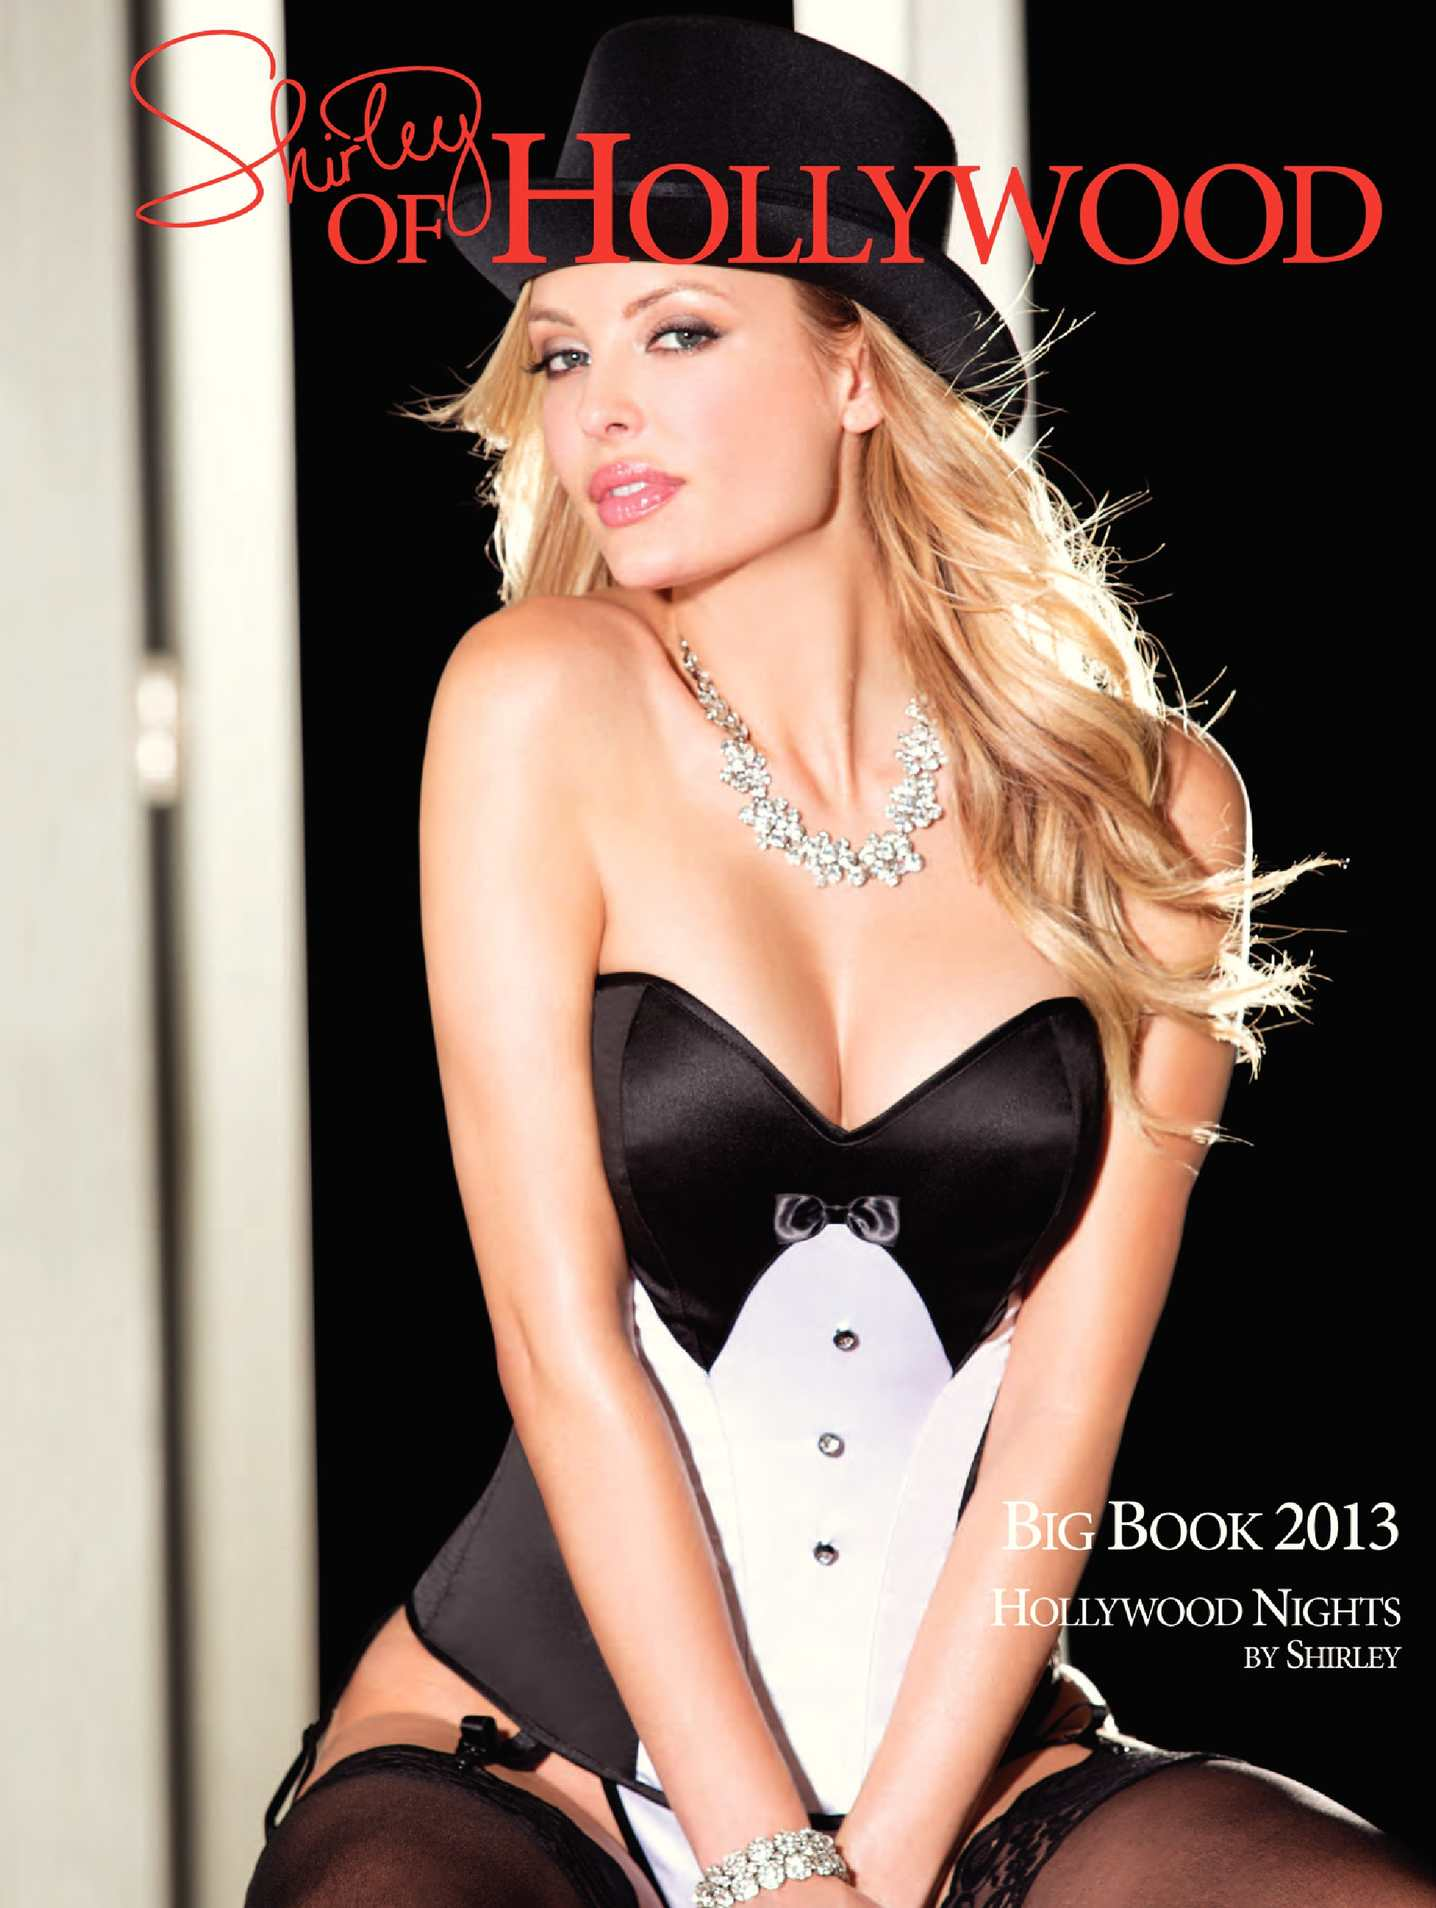 f1aa06e43f6 Calaméo - Shirley of Hollywood Big Book Collection 2013 Made in USA